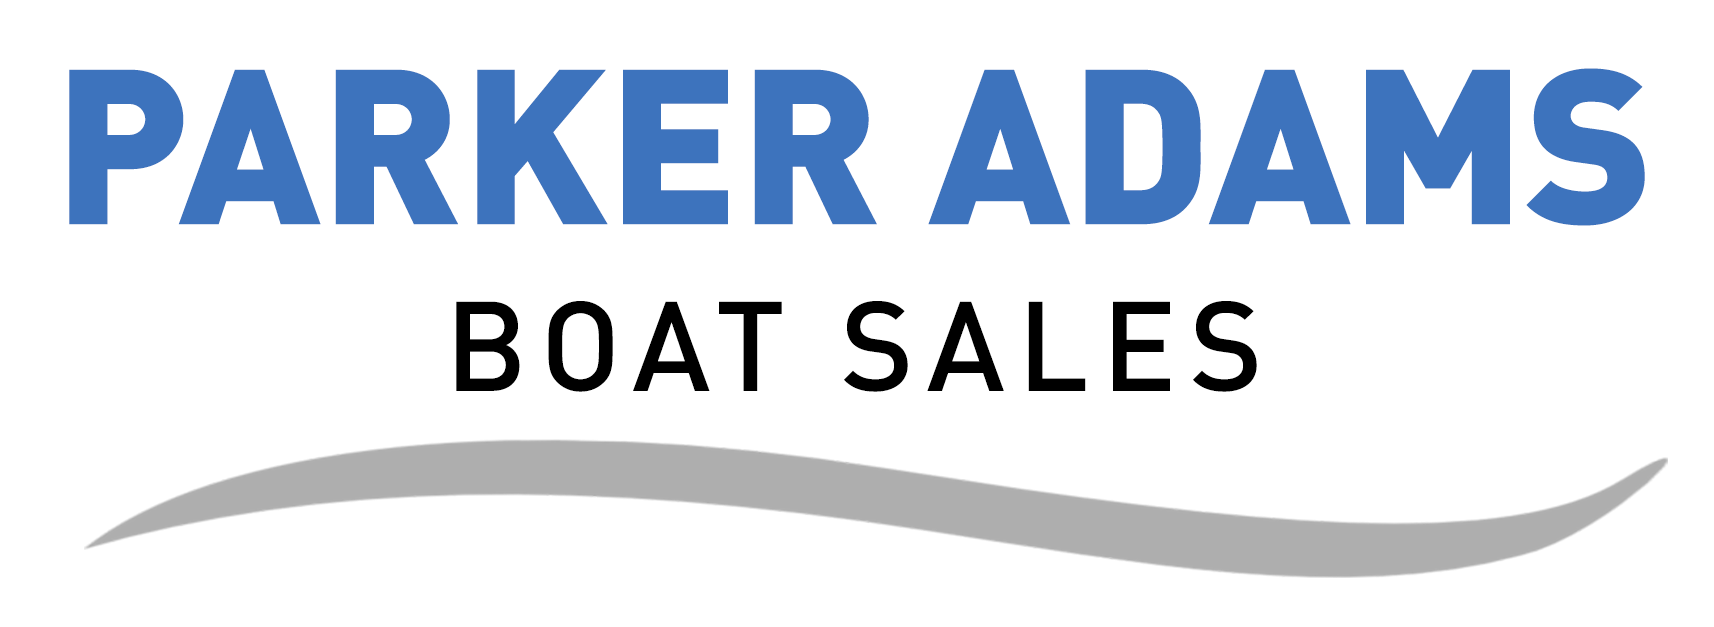 Parker Adams Boat Sales